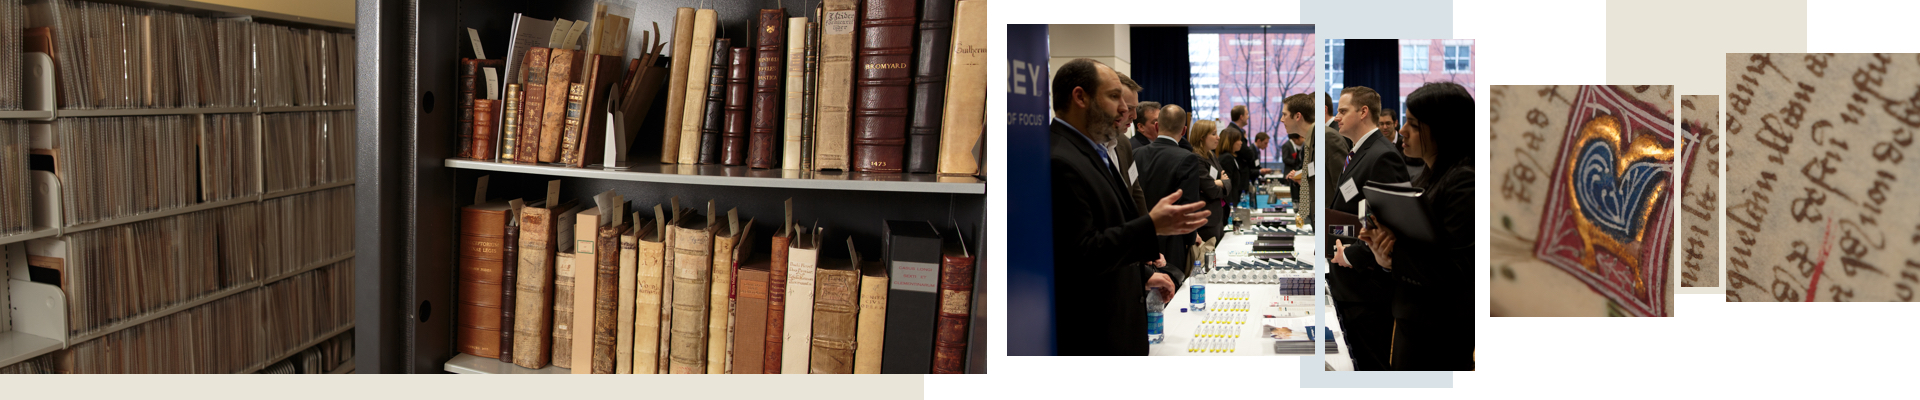 Books in a library, attendees at a networking event, an old, handwritten manuscript